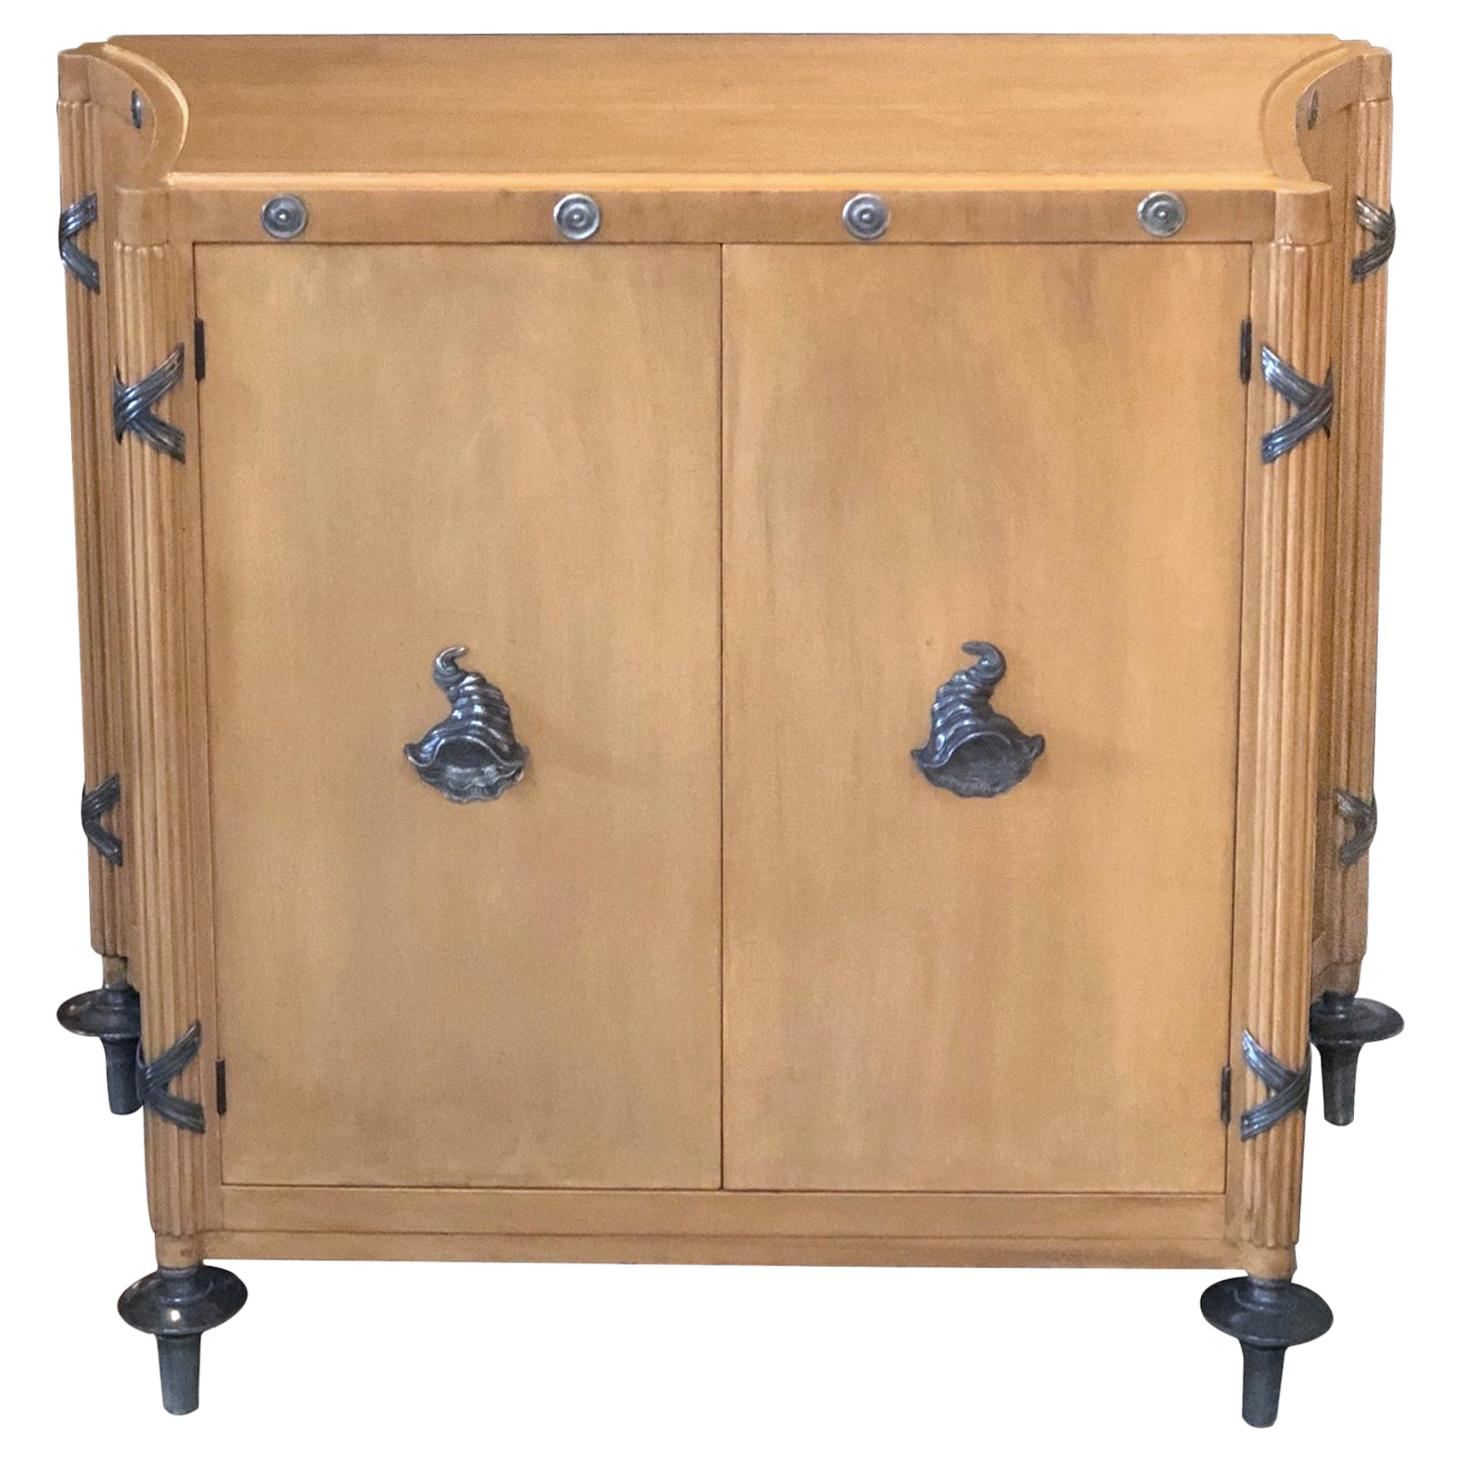 Stylish French 1940s Sycamore 2-Door Cabinet with Pewter Mounts